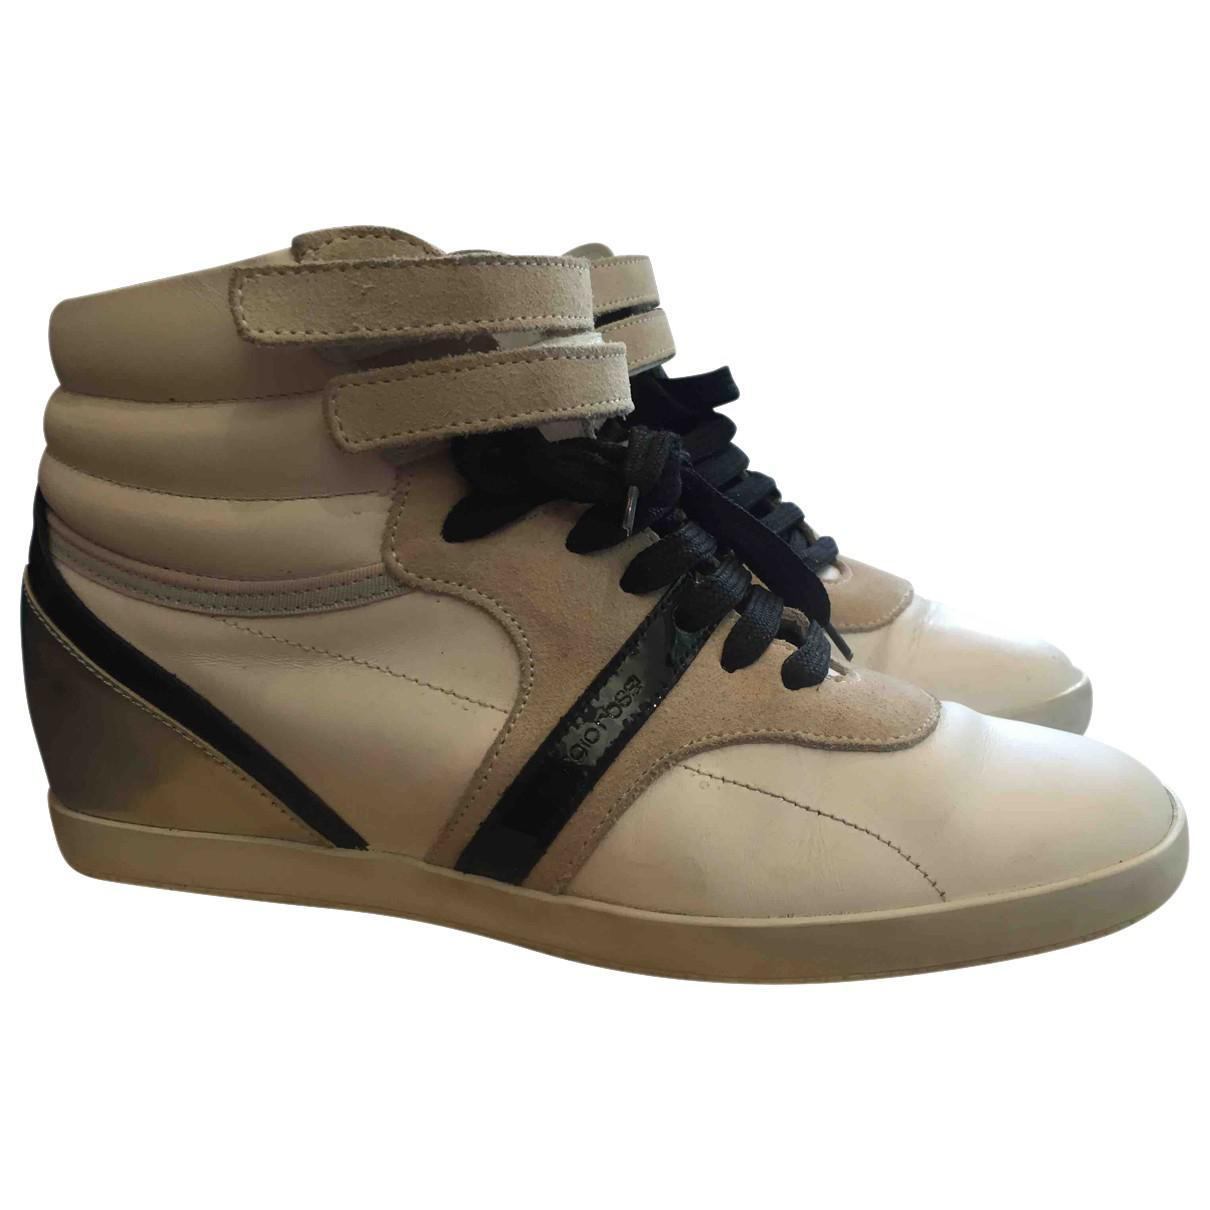 Pre-owned - Leather trainers Sergio Rossi